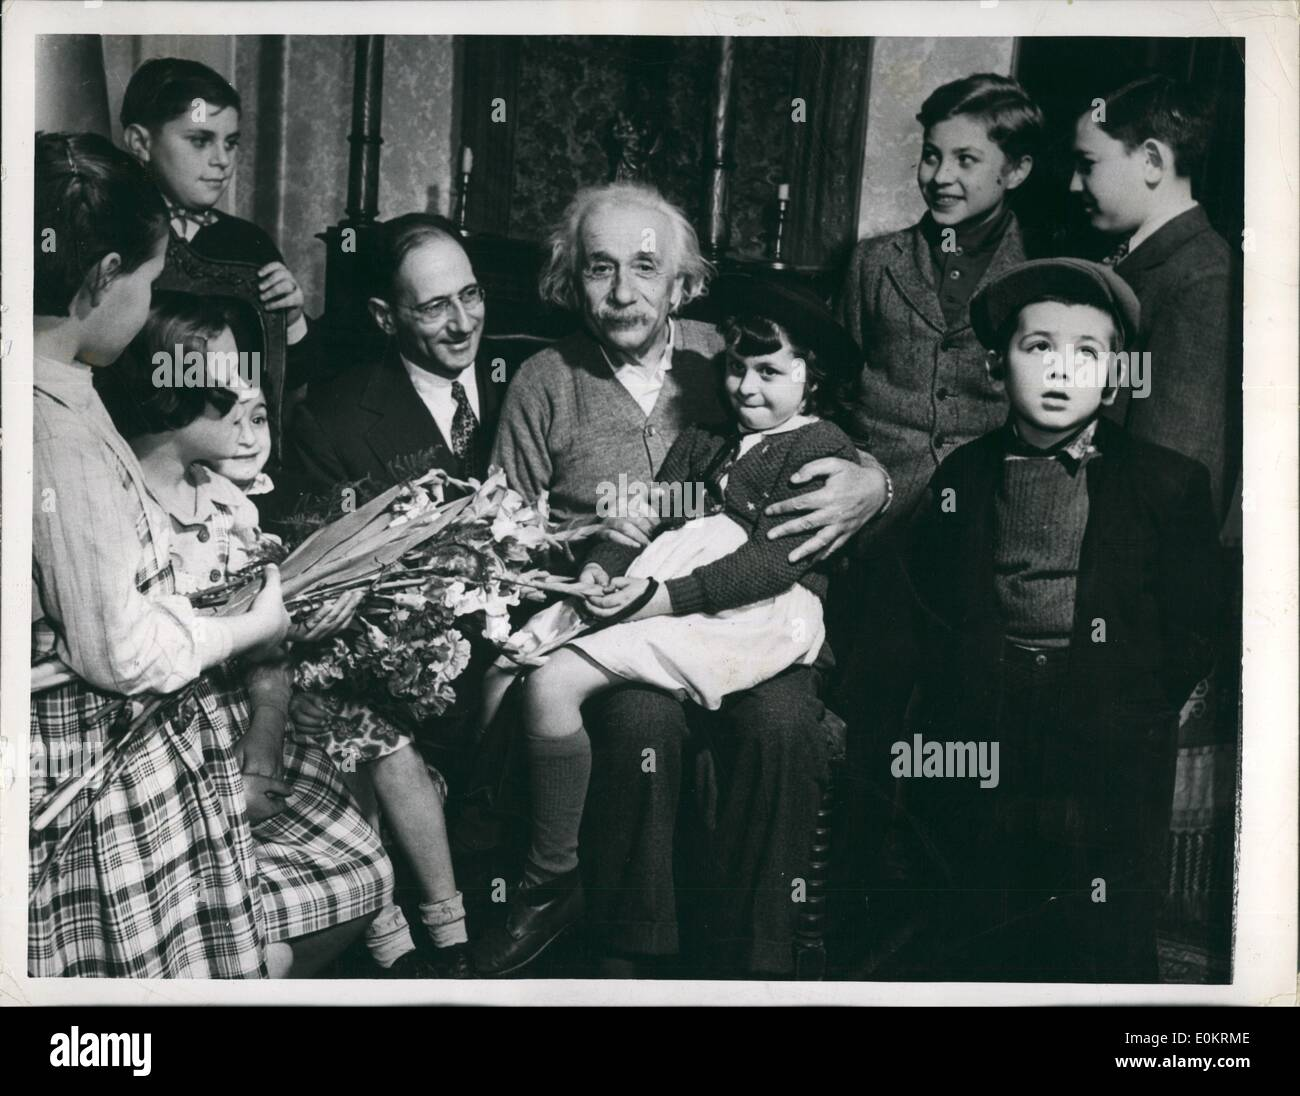 Mar. 03, 1949 - Displaced children pay per-birthday call on Albert Einstein: Youngsters from the reception shelter of united service for new American visited Dr. Albert Einstein, eminent scientist, last week at his home in princeston, new jersey. Dr. Einstein celebrated his seventieth birthday on march 14th, and as a birthdat gift a pledge was given to him by william Rossenwald that all displaced persons in European camps would be out by the end of 1949. Dr. Einstein holds 8-year-old victoria lustig on his lap - Stock Image